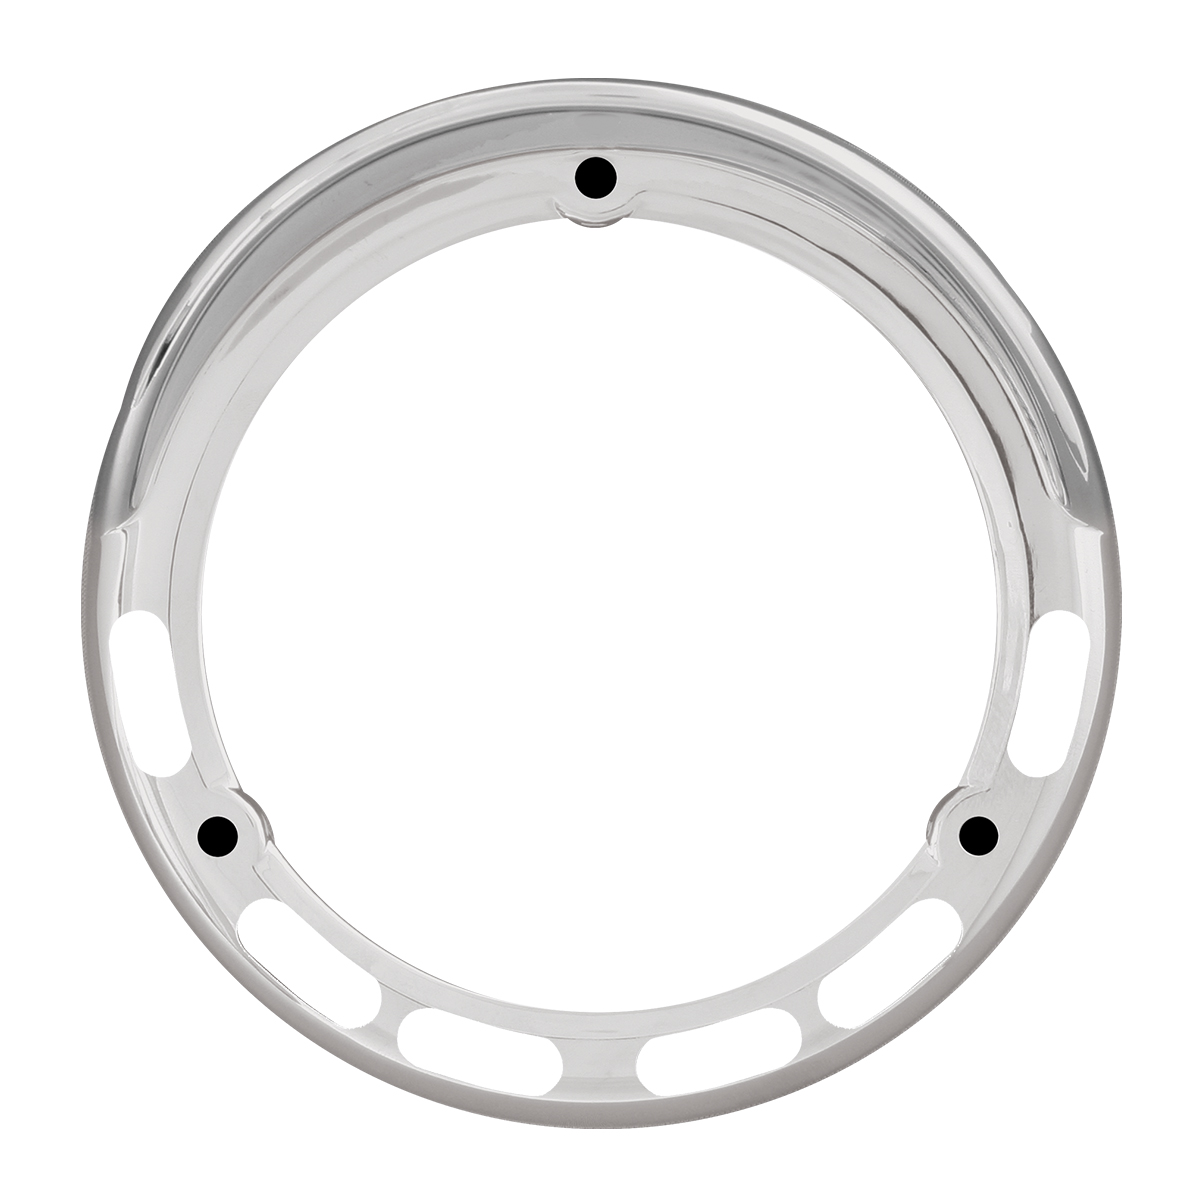 "78368 Chrome Plastic Bezel w/ Visor for 4"" Pearl LED Pedestal Lights"